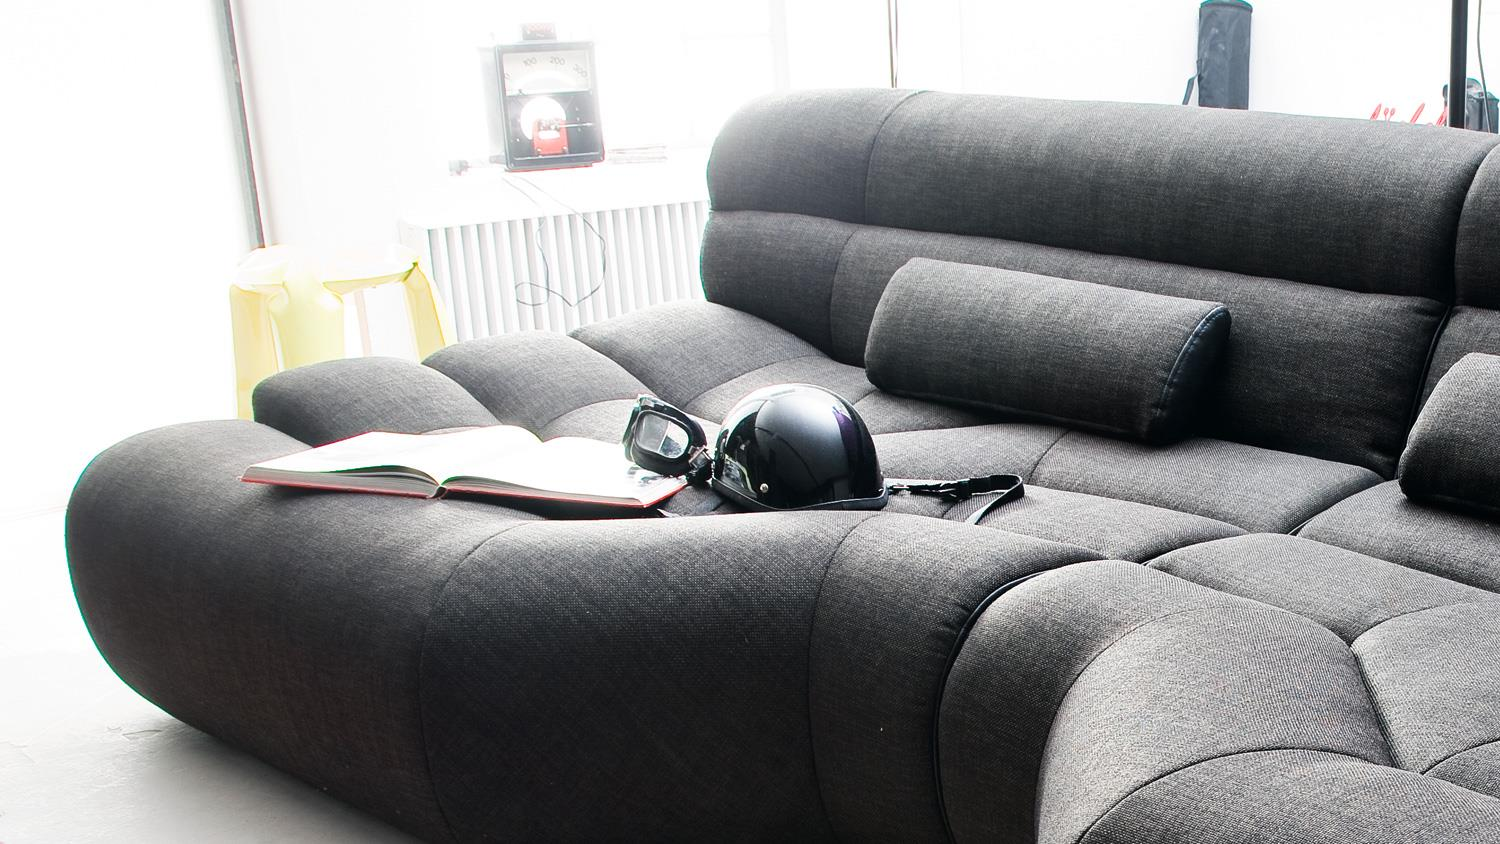 sofa bezug fabulous selbst genhter sofabezug fr malousofa. Black Bedroom Furniture Sets. Home Design Ideas